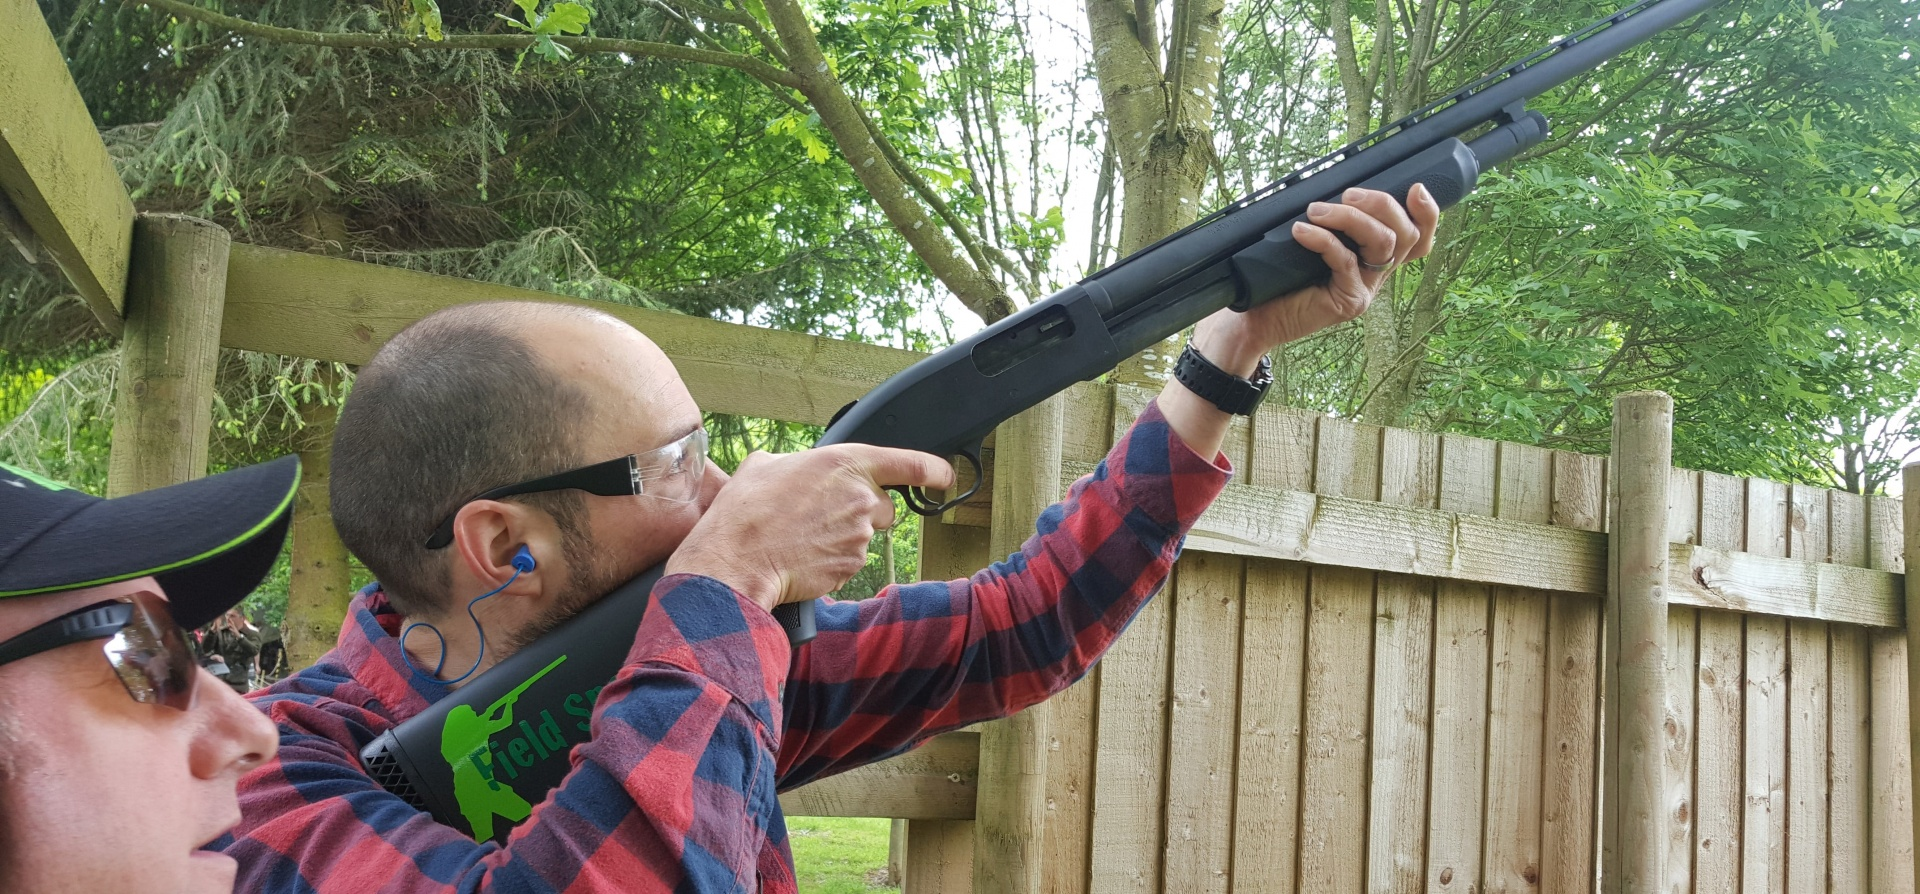 Pump Action Shotgun Experience Leicestershire-4